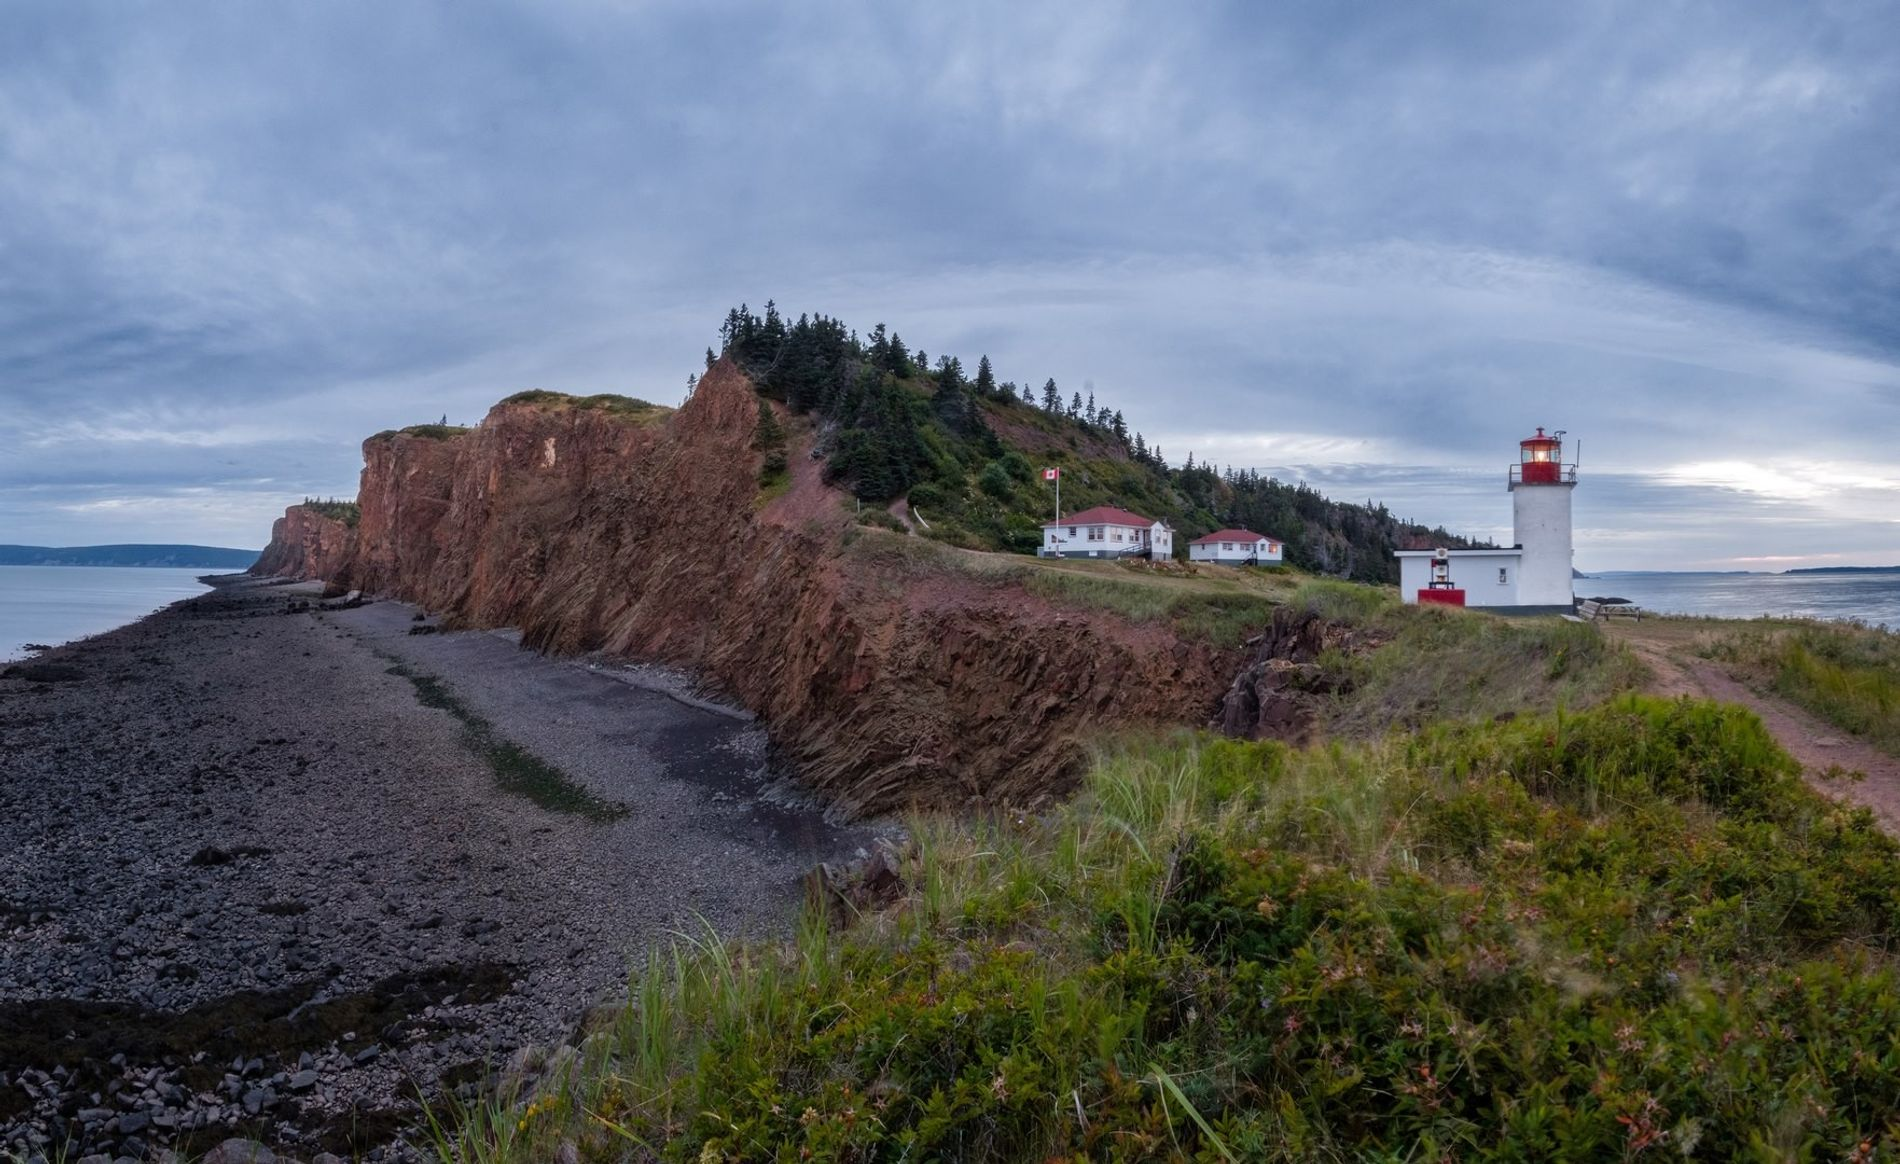 Visitors who spend the night in the lightkeepers house at Cape d'Or, can experience the solitude ...